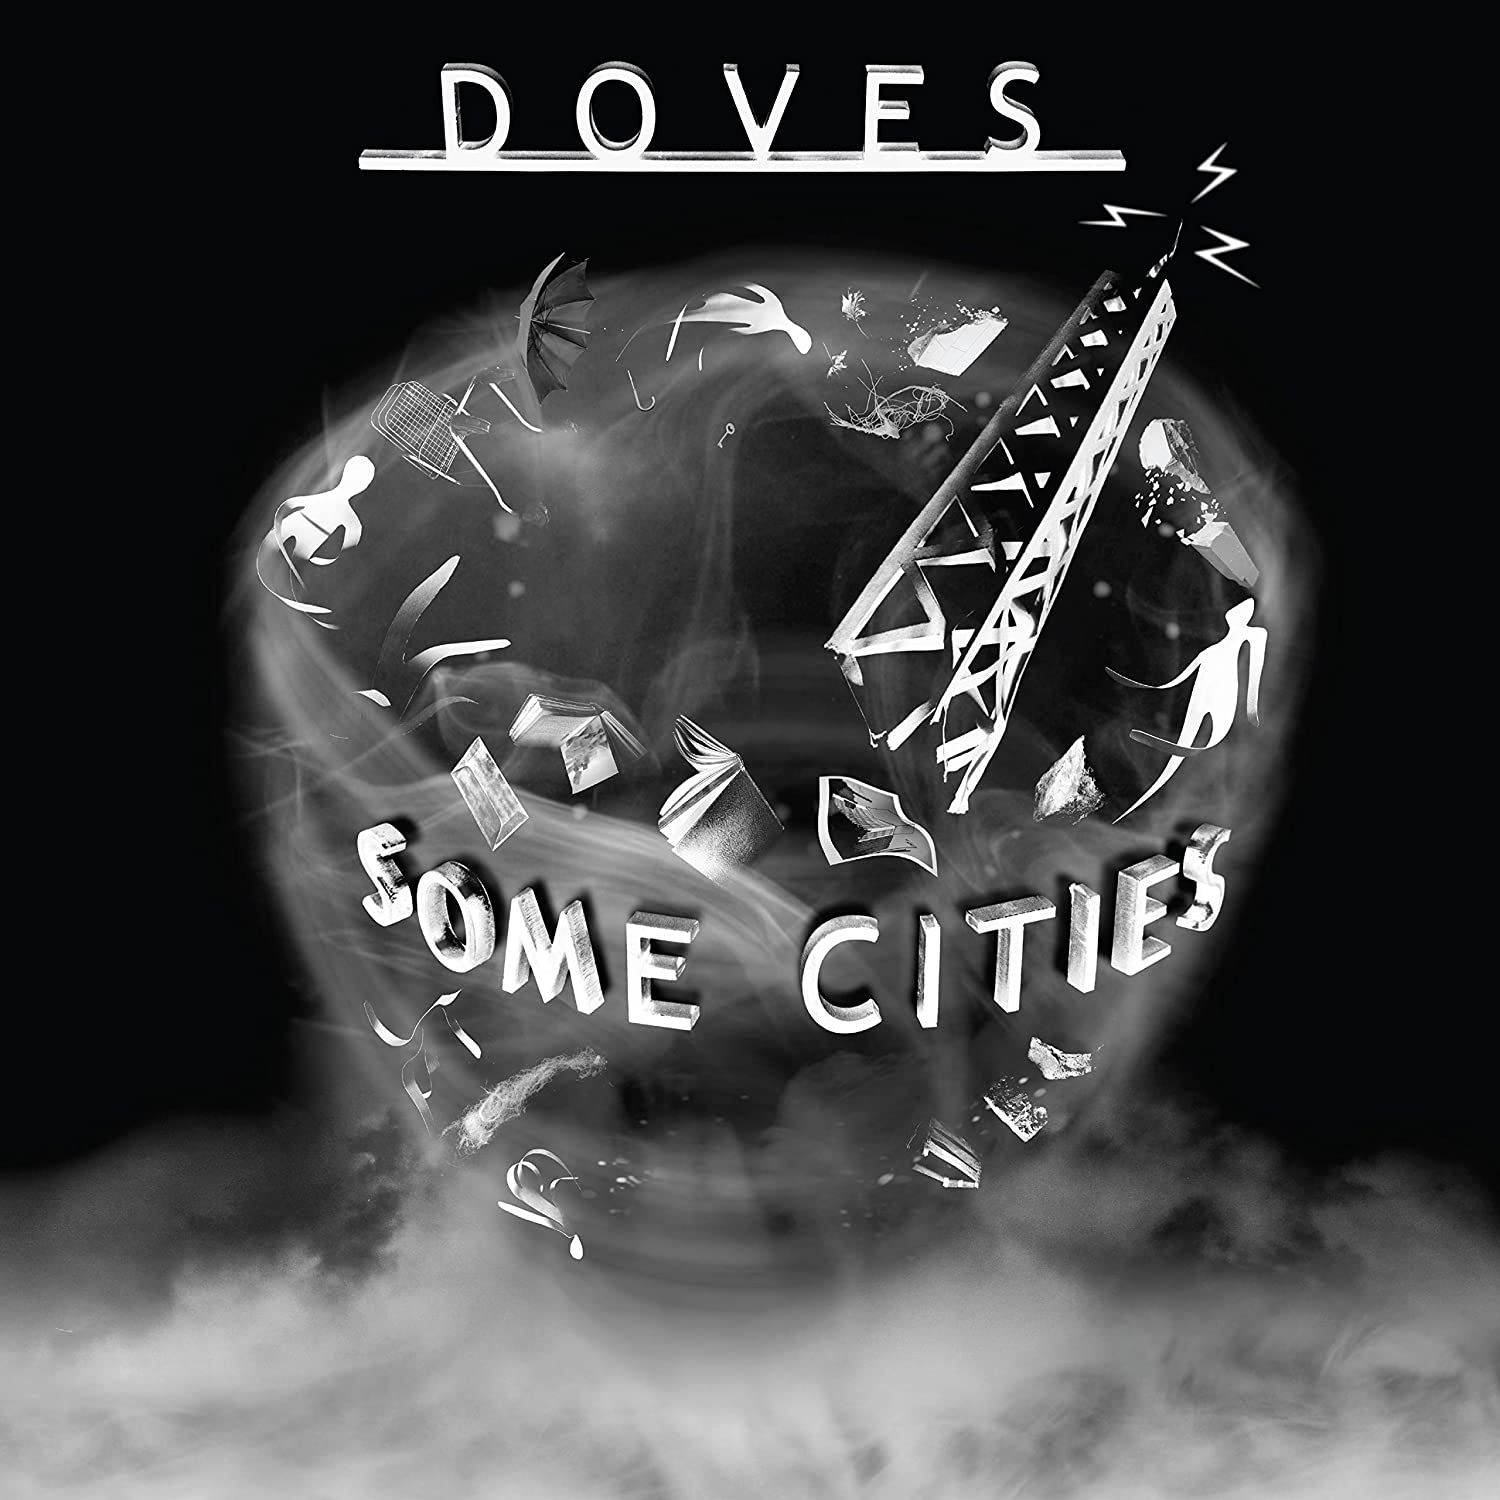 Doves - Some Cities [2LP]